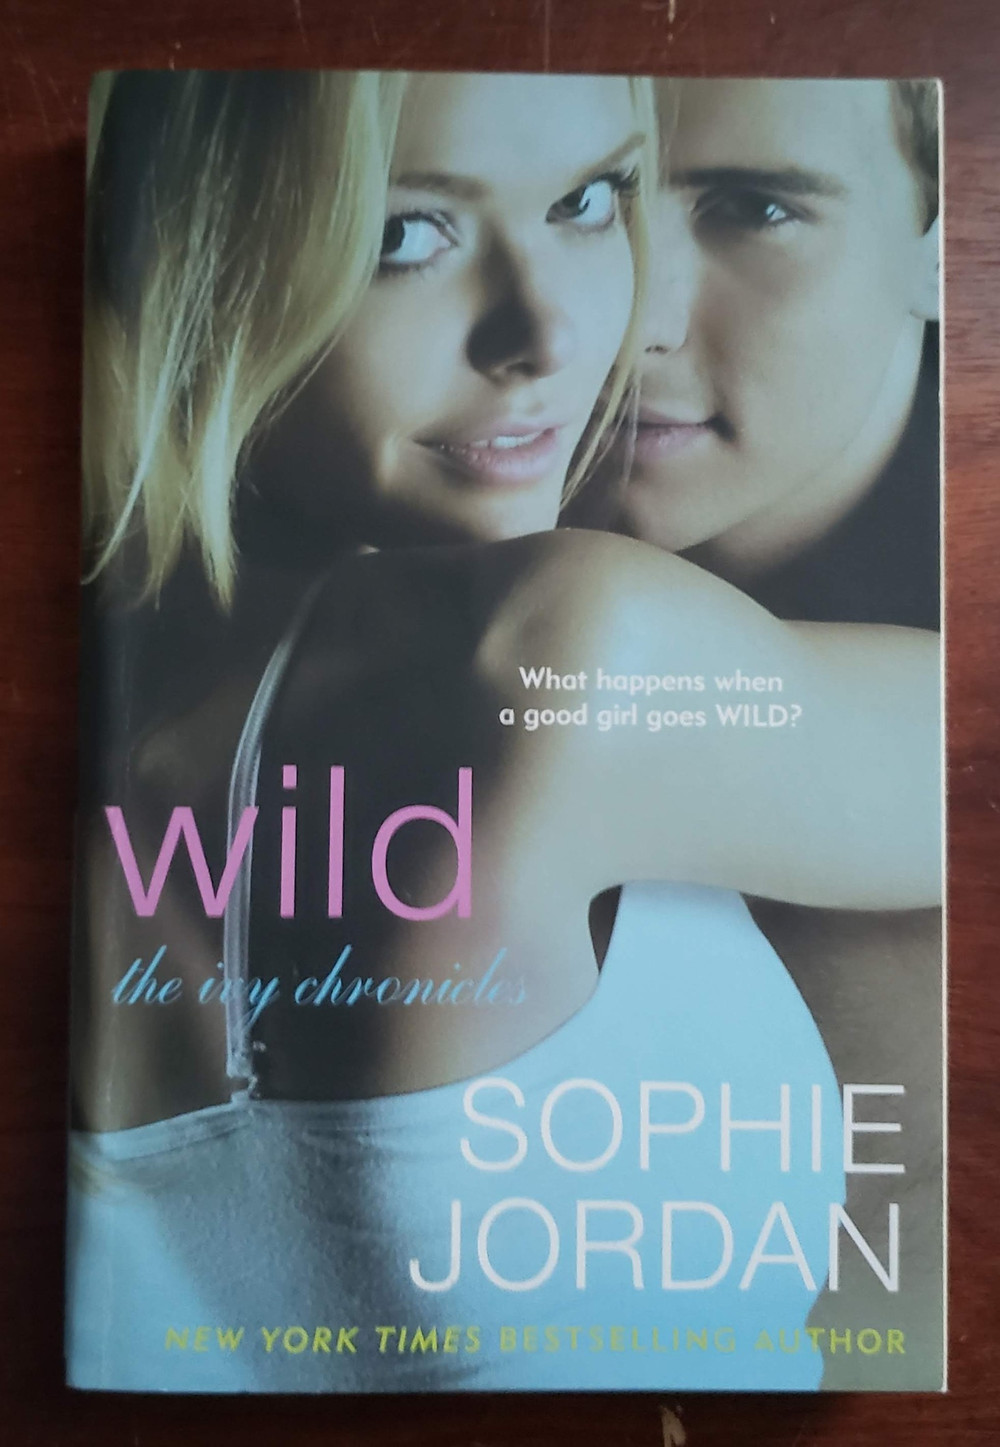 Front image of the book cover for Wild by Sophie Jordan.